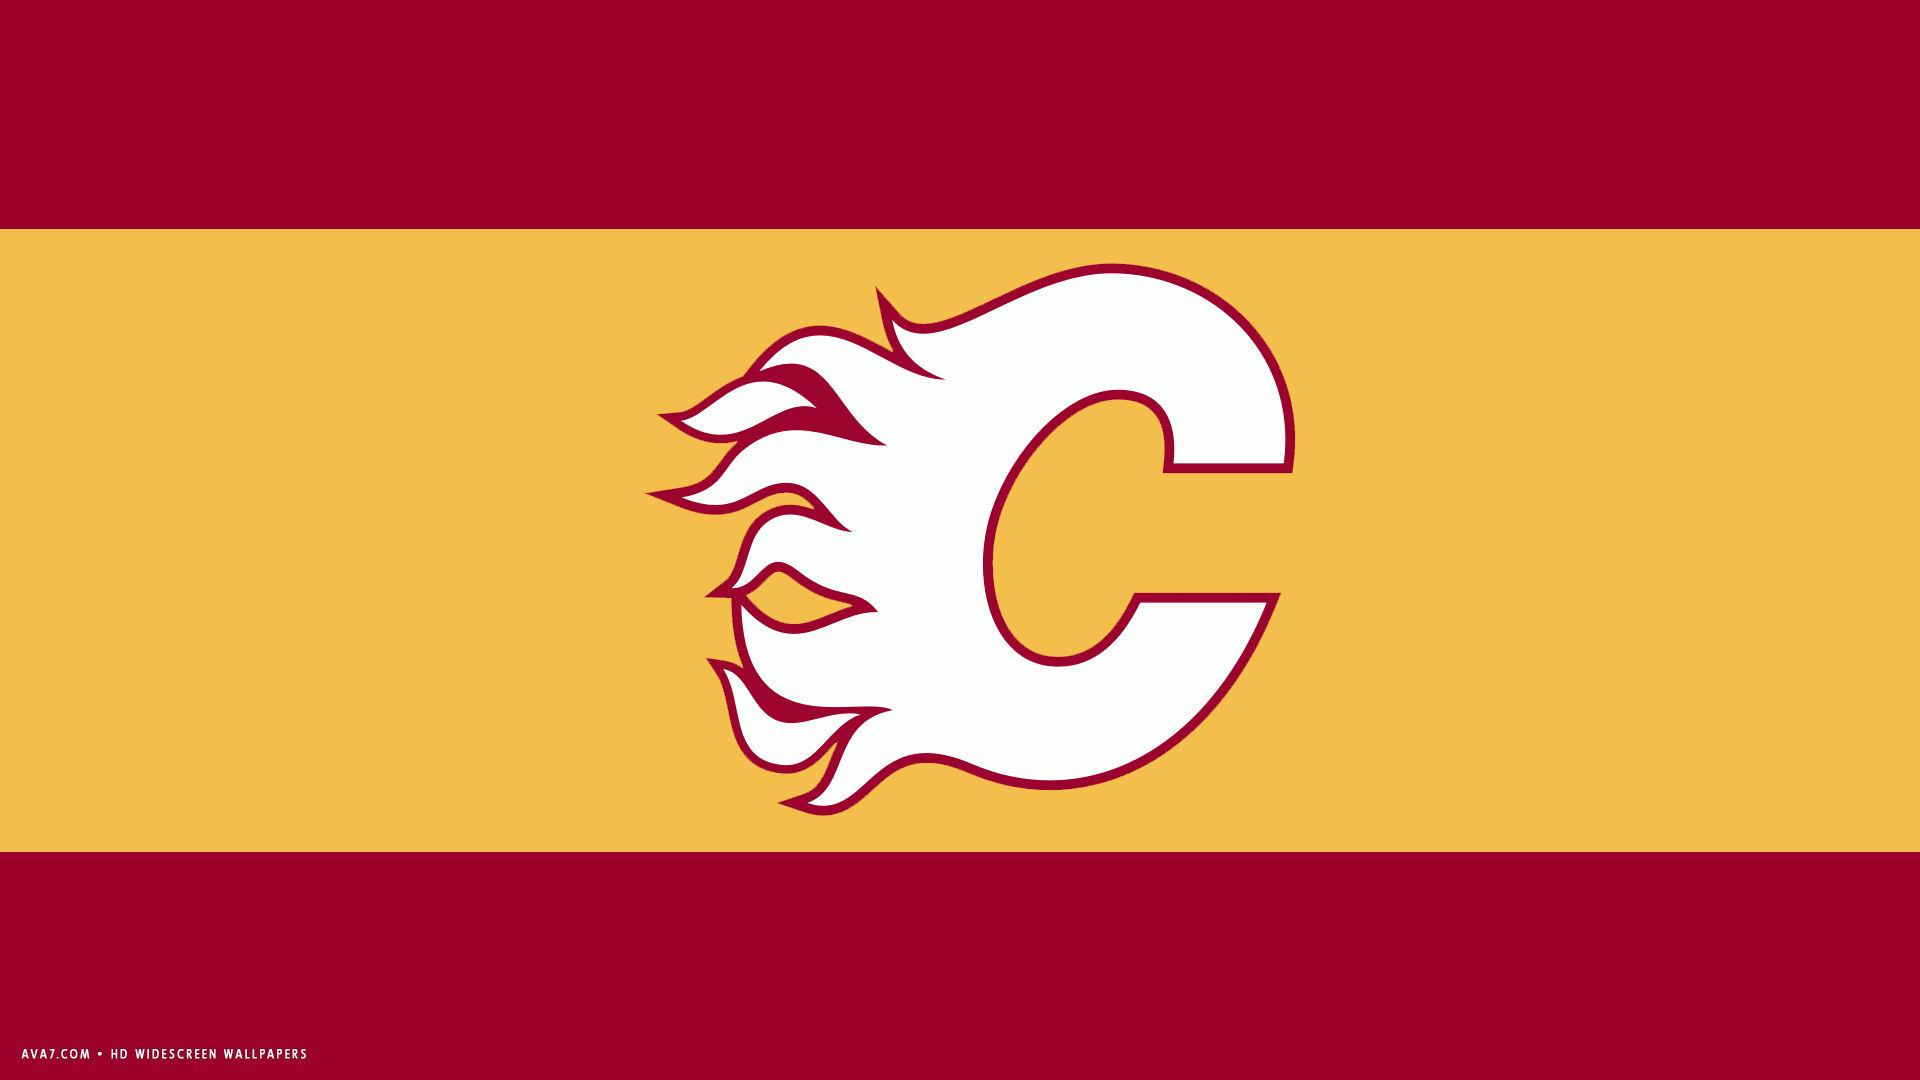 calgary flames nfl hockey team hd widescreen wallpapers / hockey